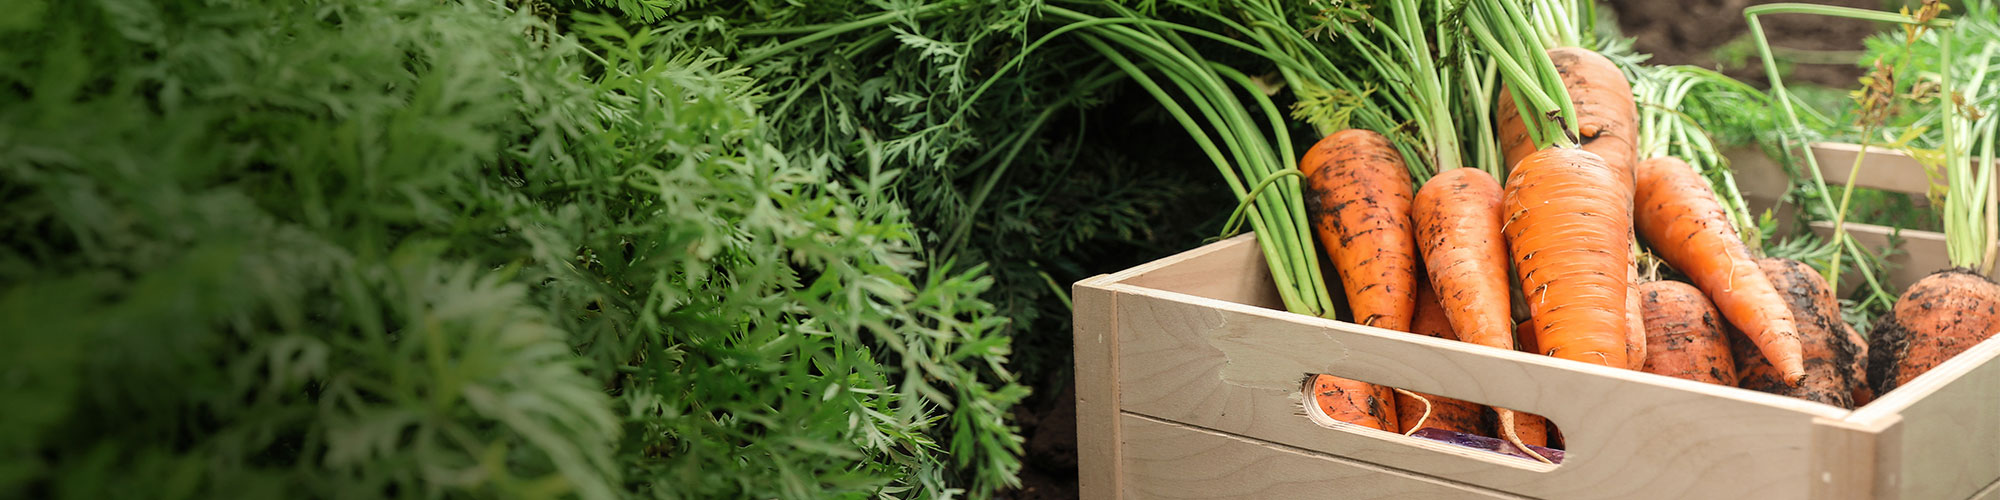 Freshly picked Carrots in a wooden box